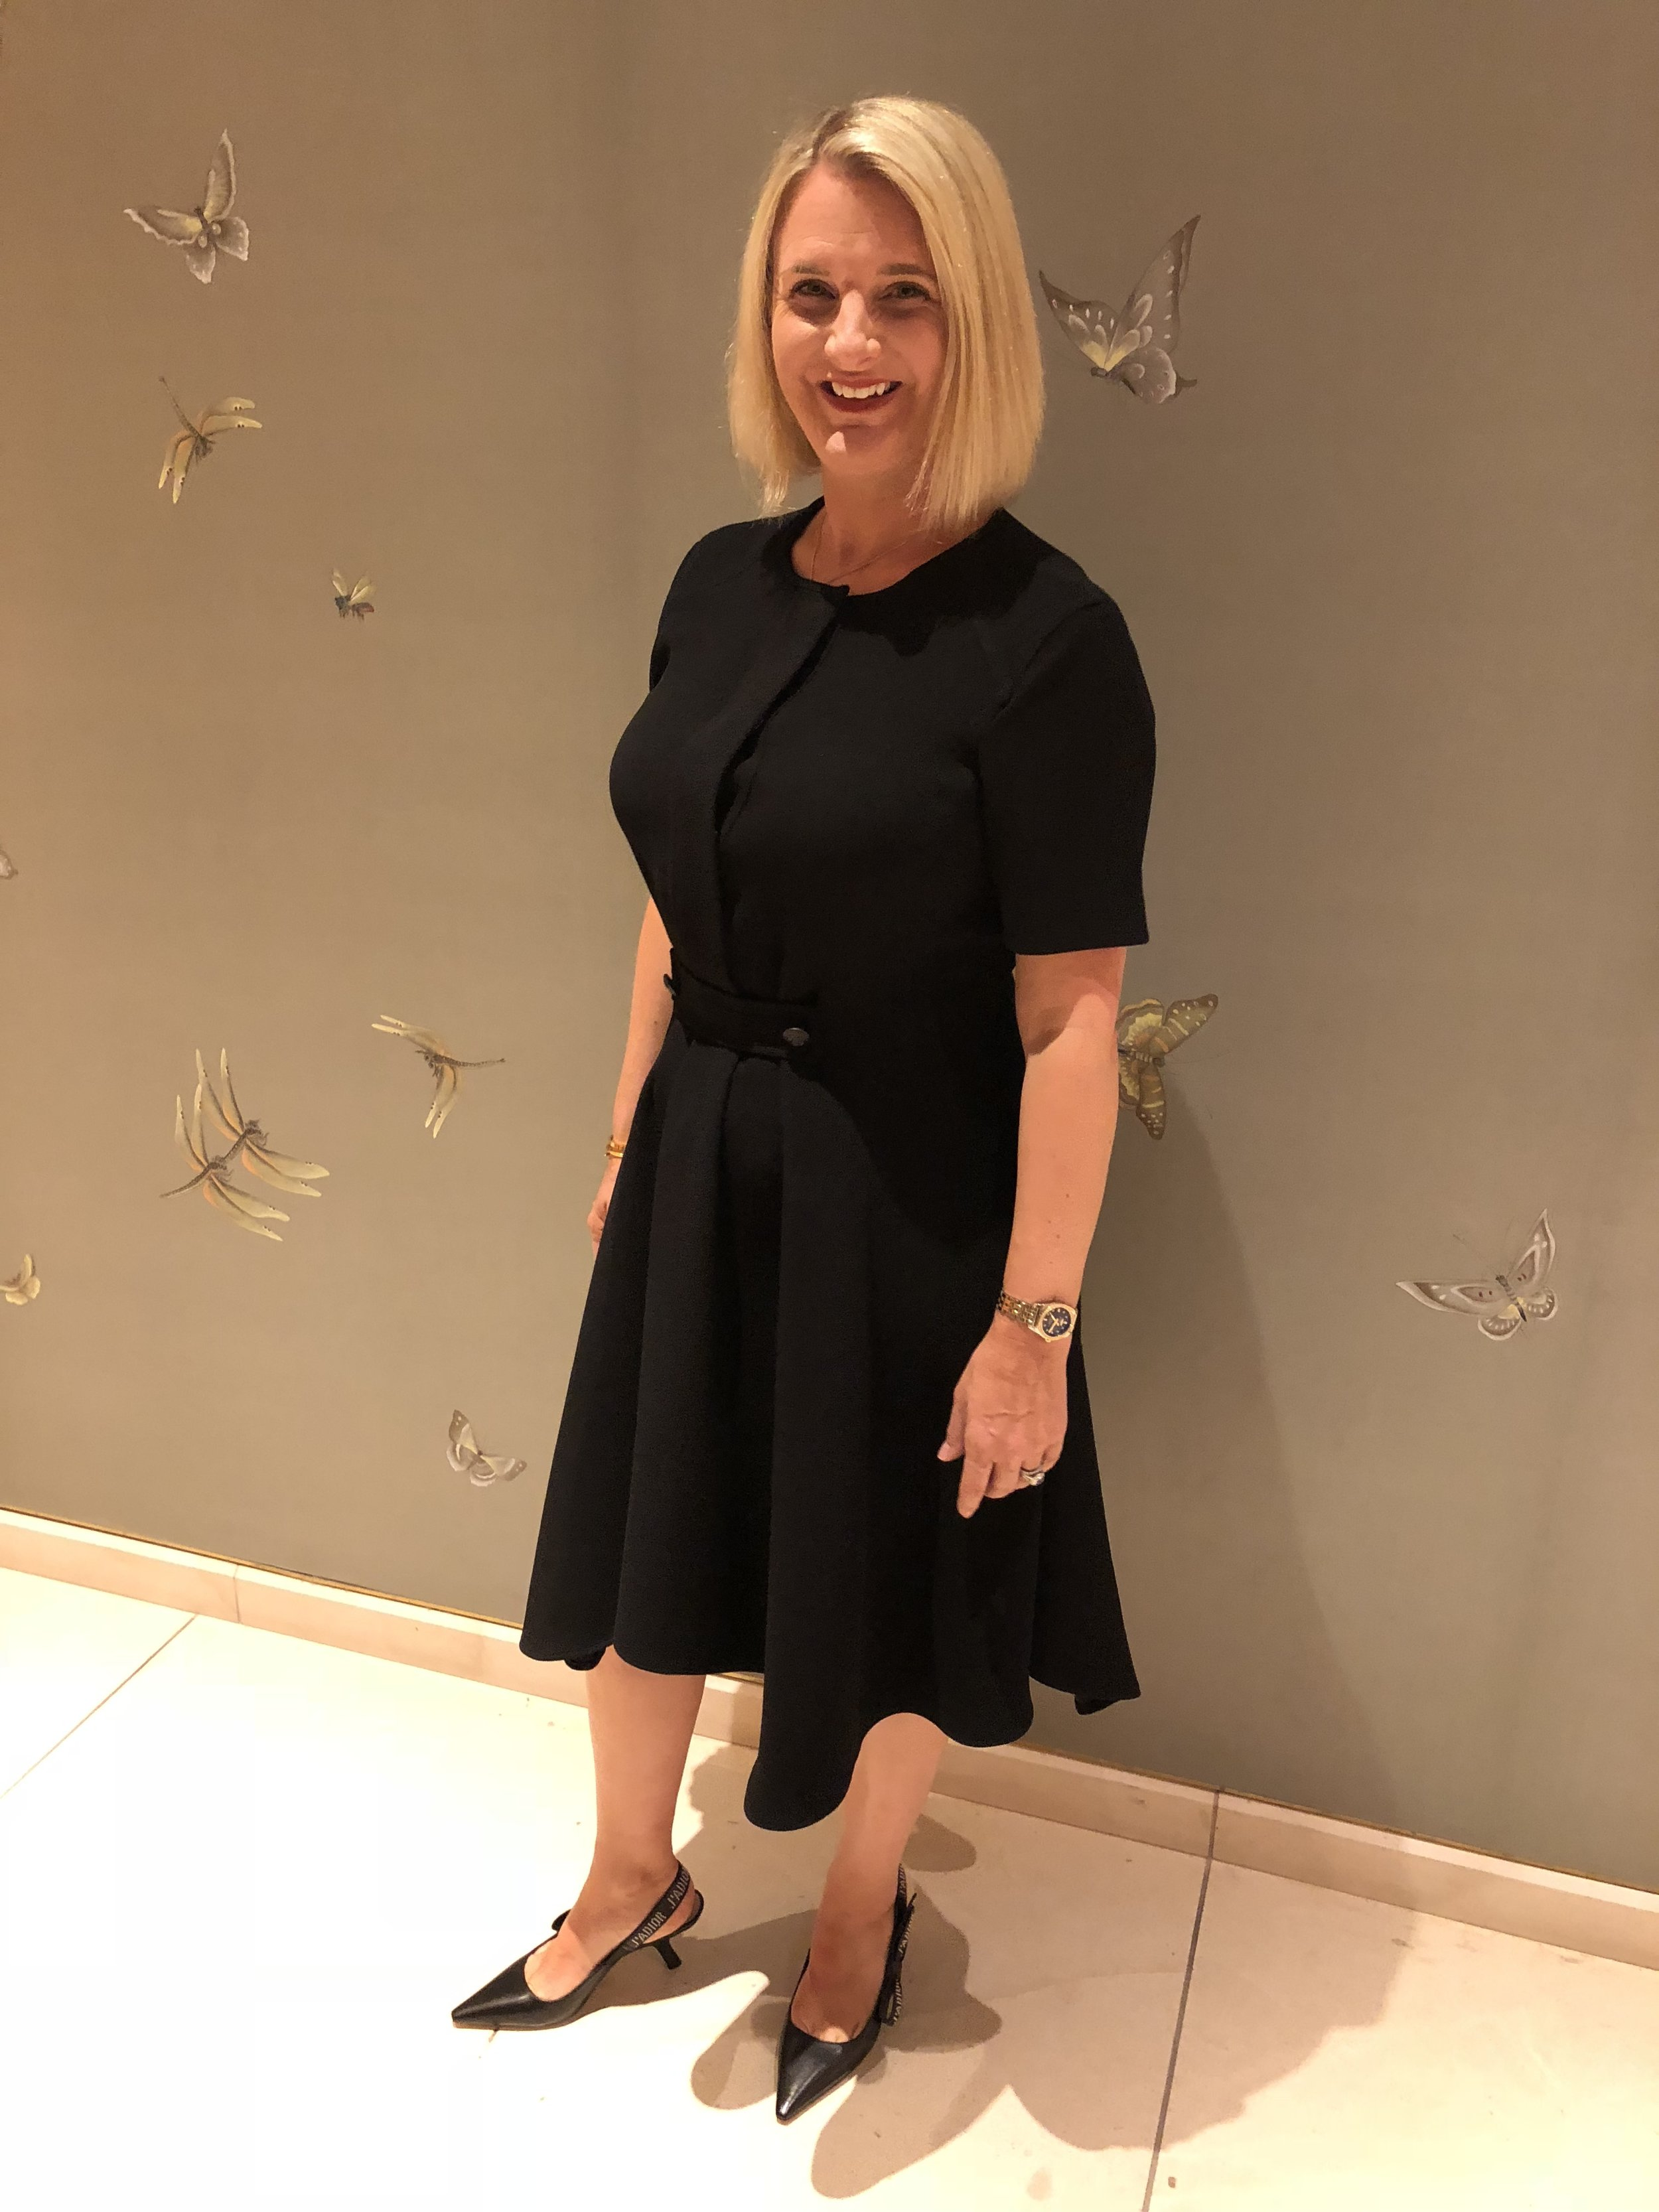 Dress from Belstaff, Shoes from Christian Dior.